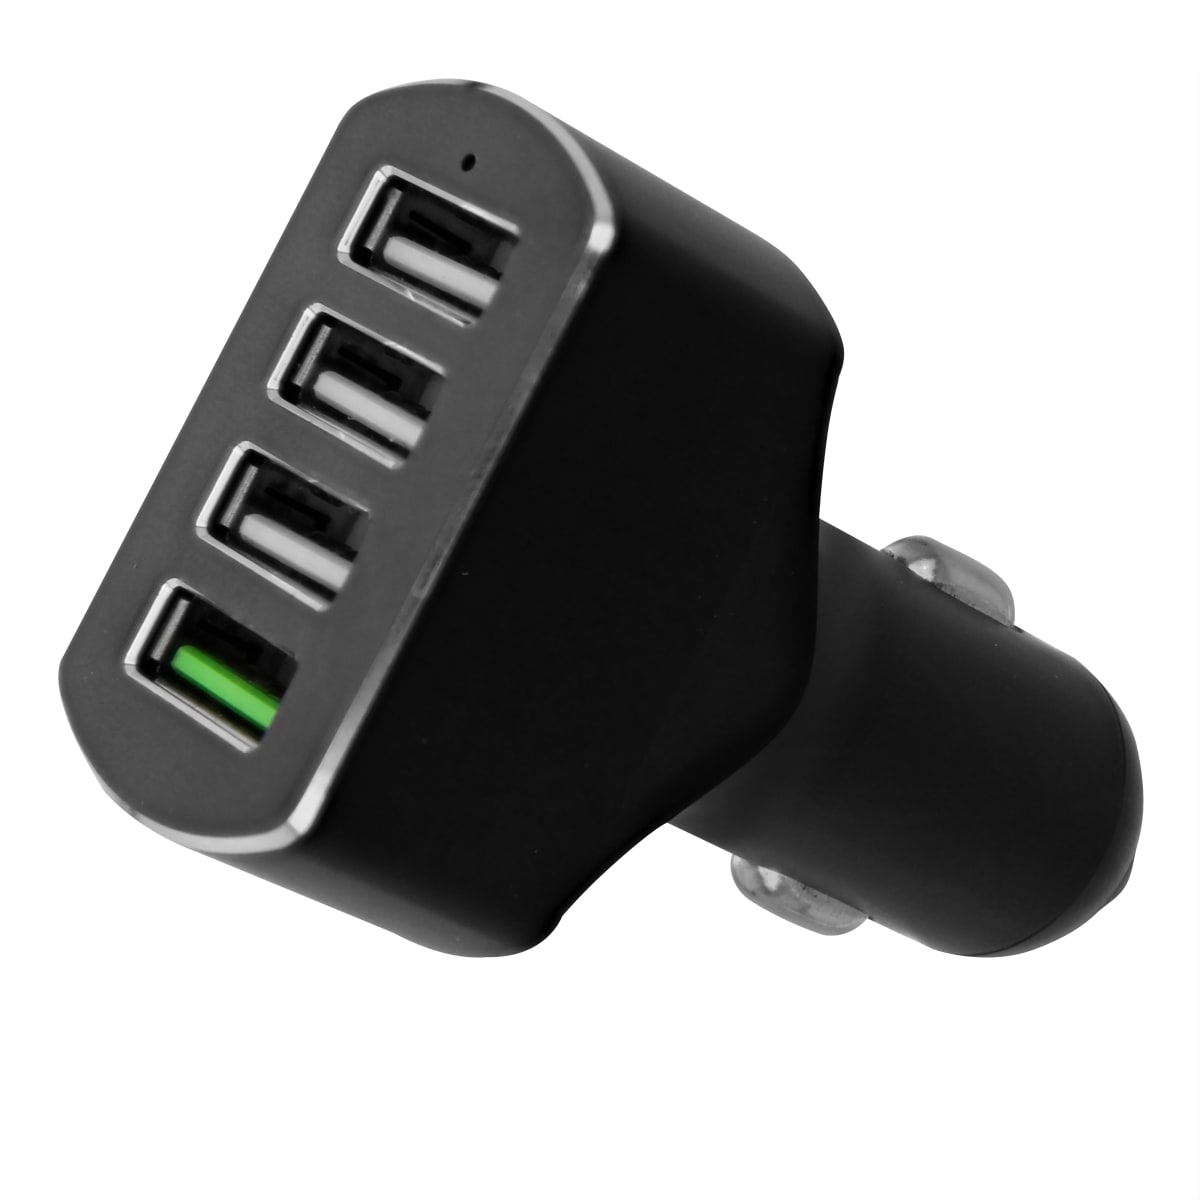 4XUSB-A Quick charge 50W car charger